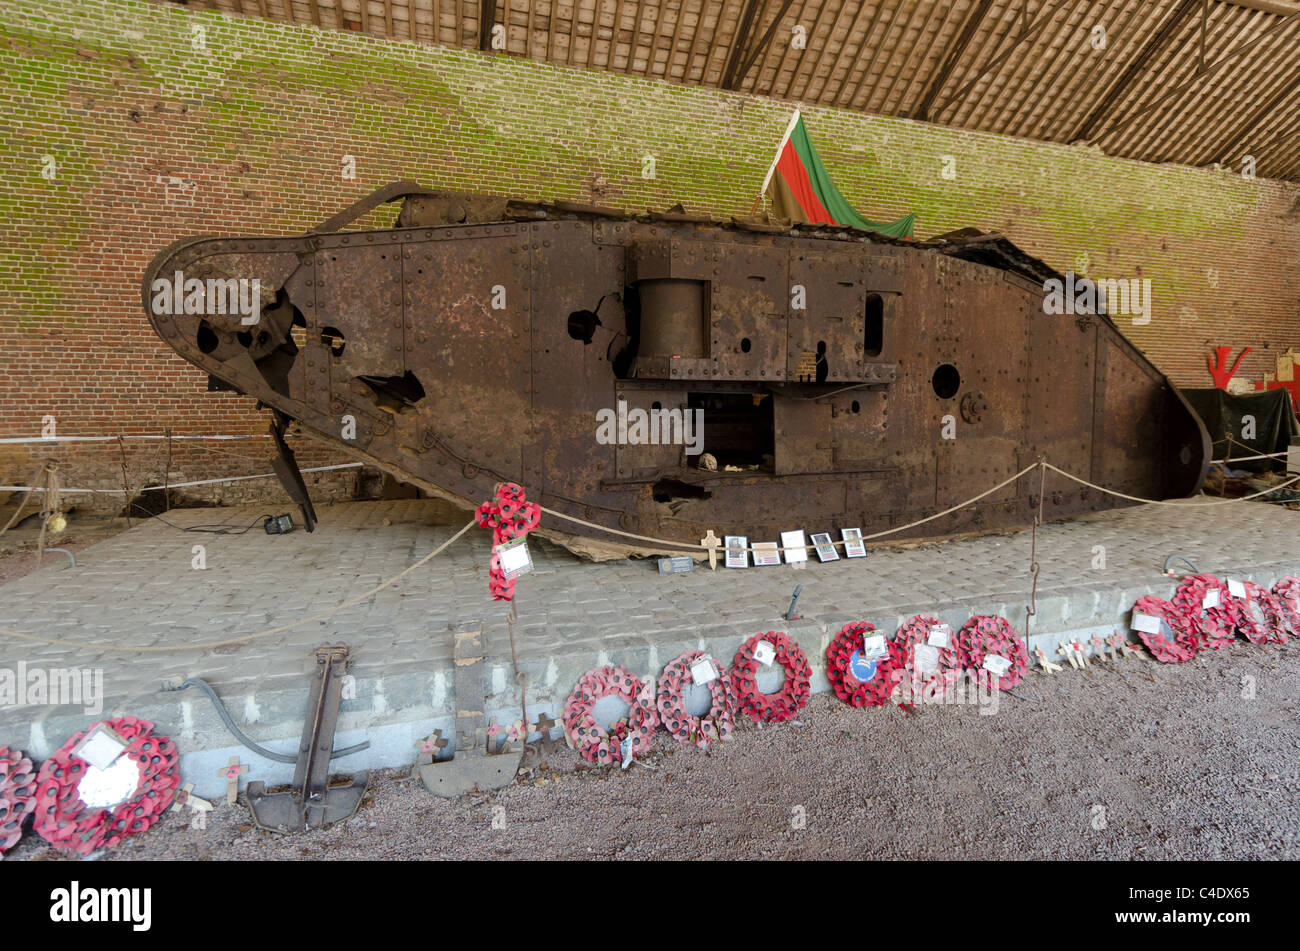 Destroyed First World War British tank on display in France - Stock Image